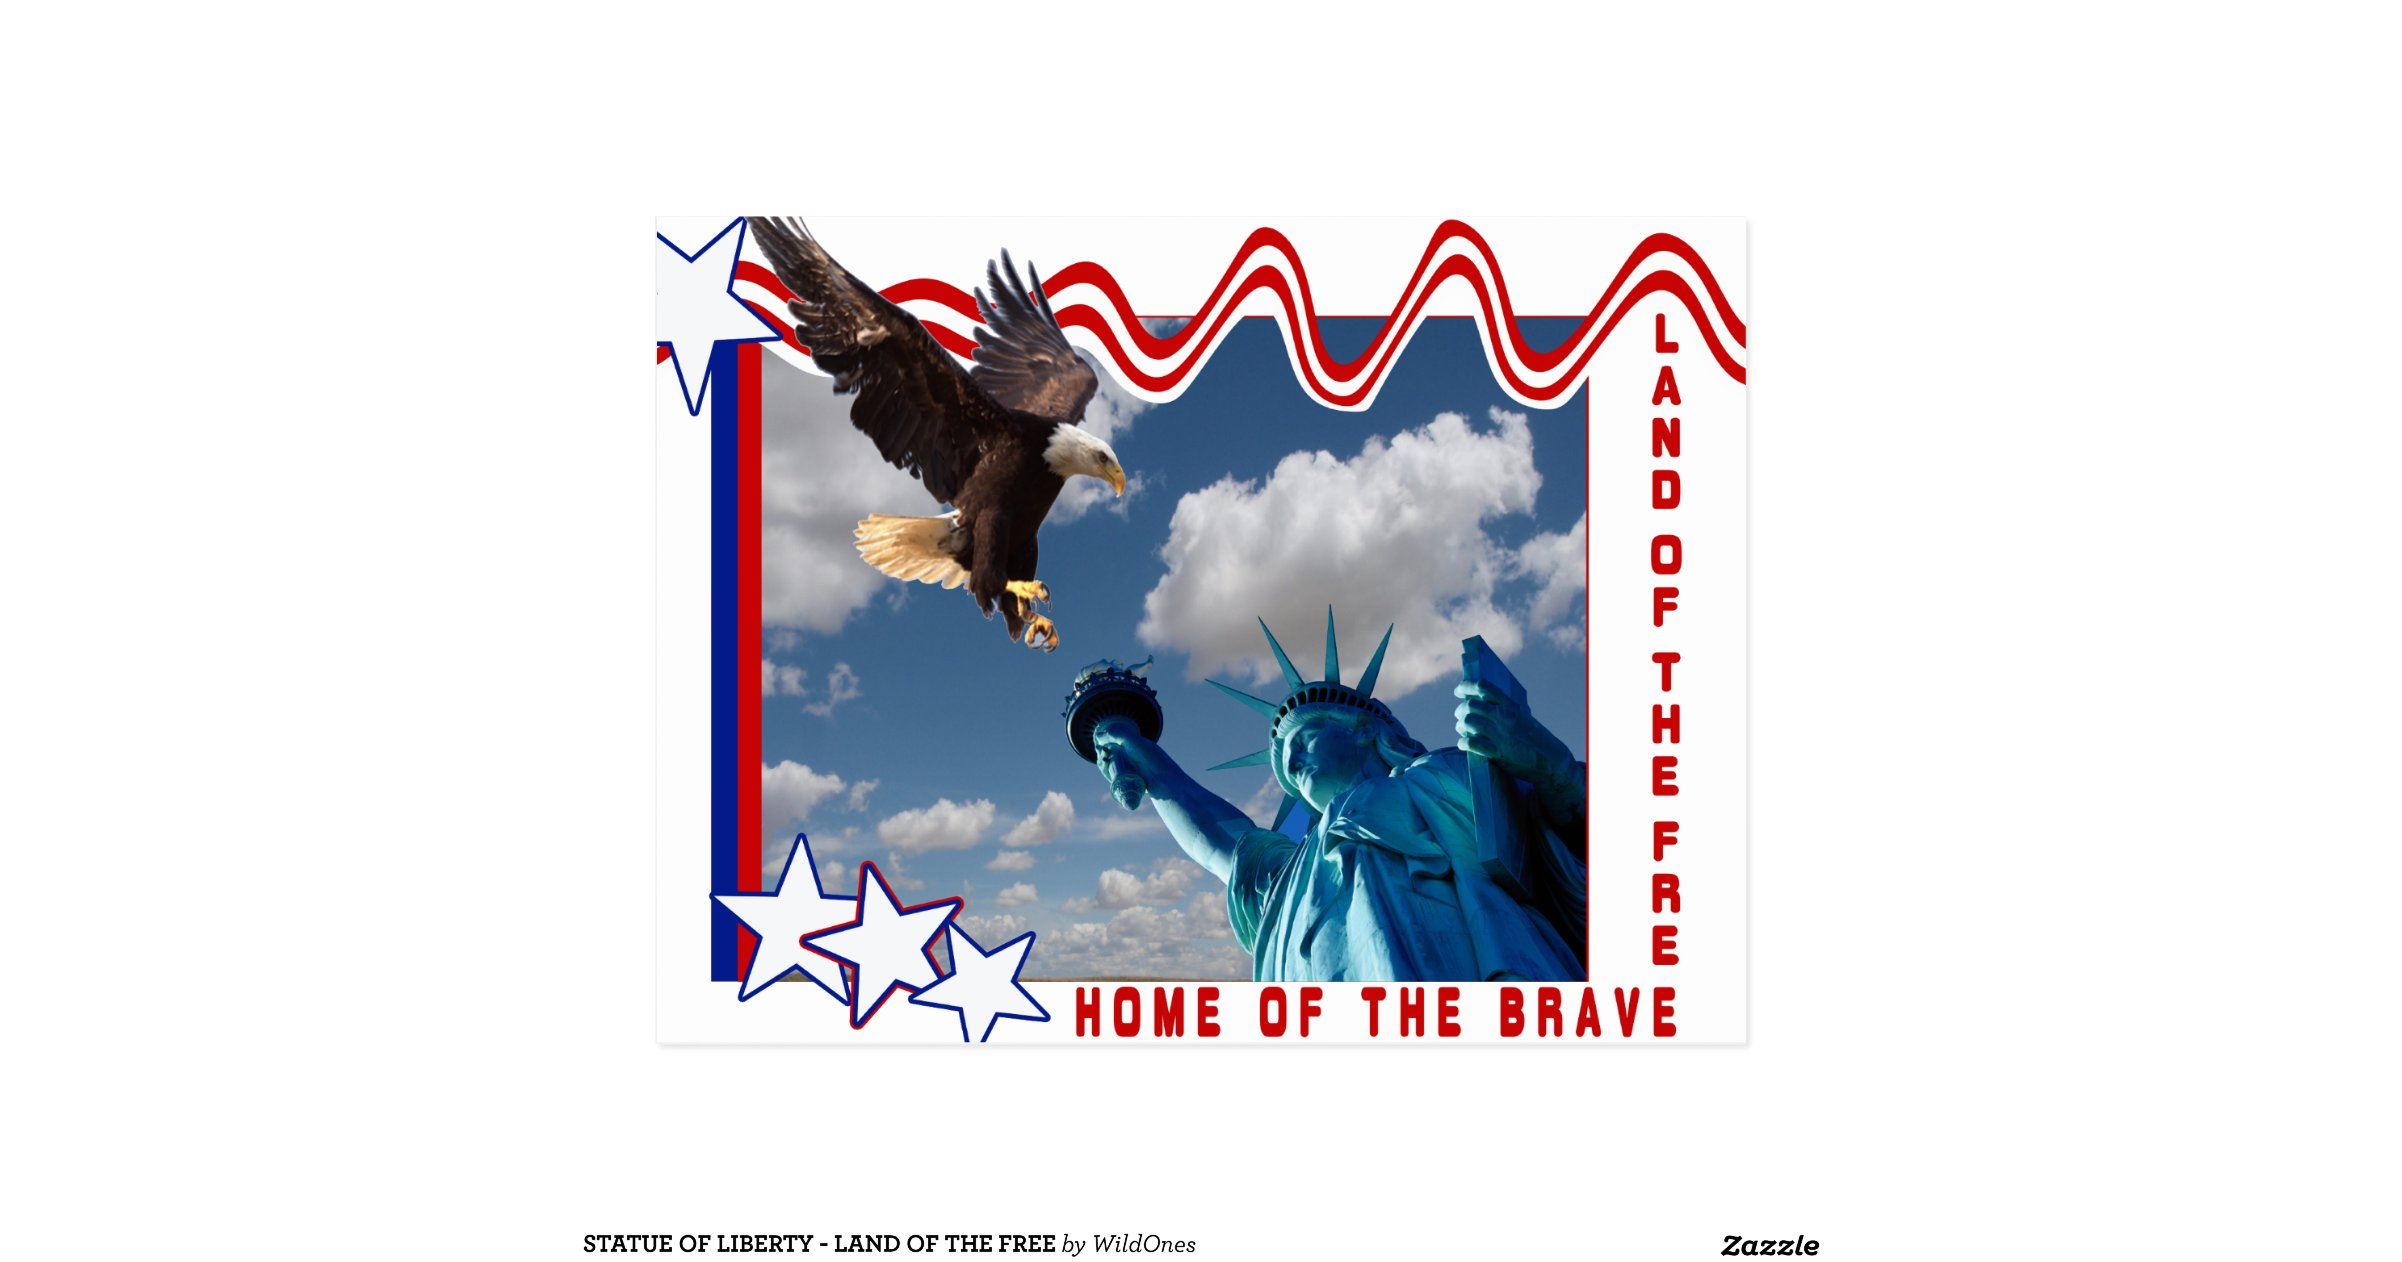 statue of liberty land of the free postcard r5e2d2ef750f84f5280cc8a16eb8db36e vgbaq 8byvr 1200. Black Bedroom Furniture Sets. Home Design Ideas